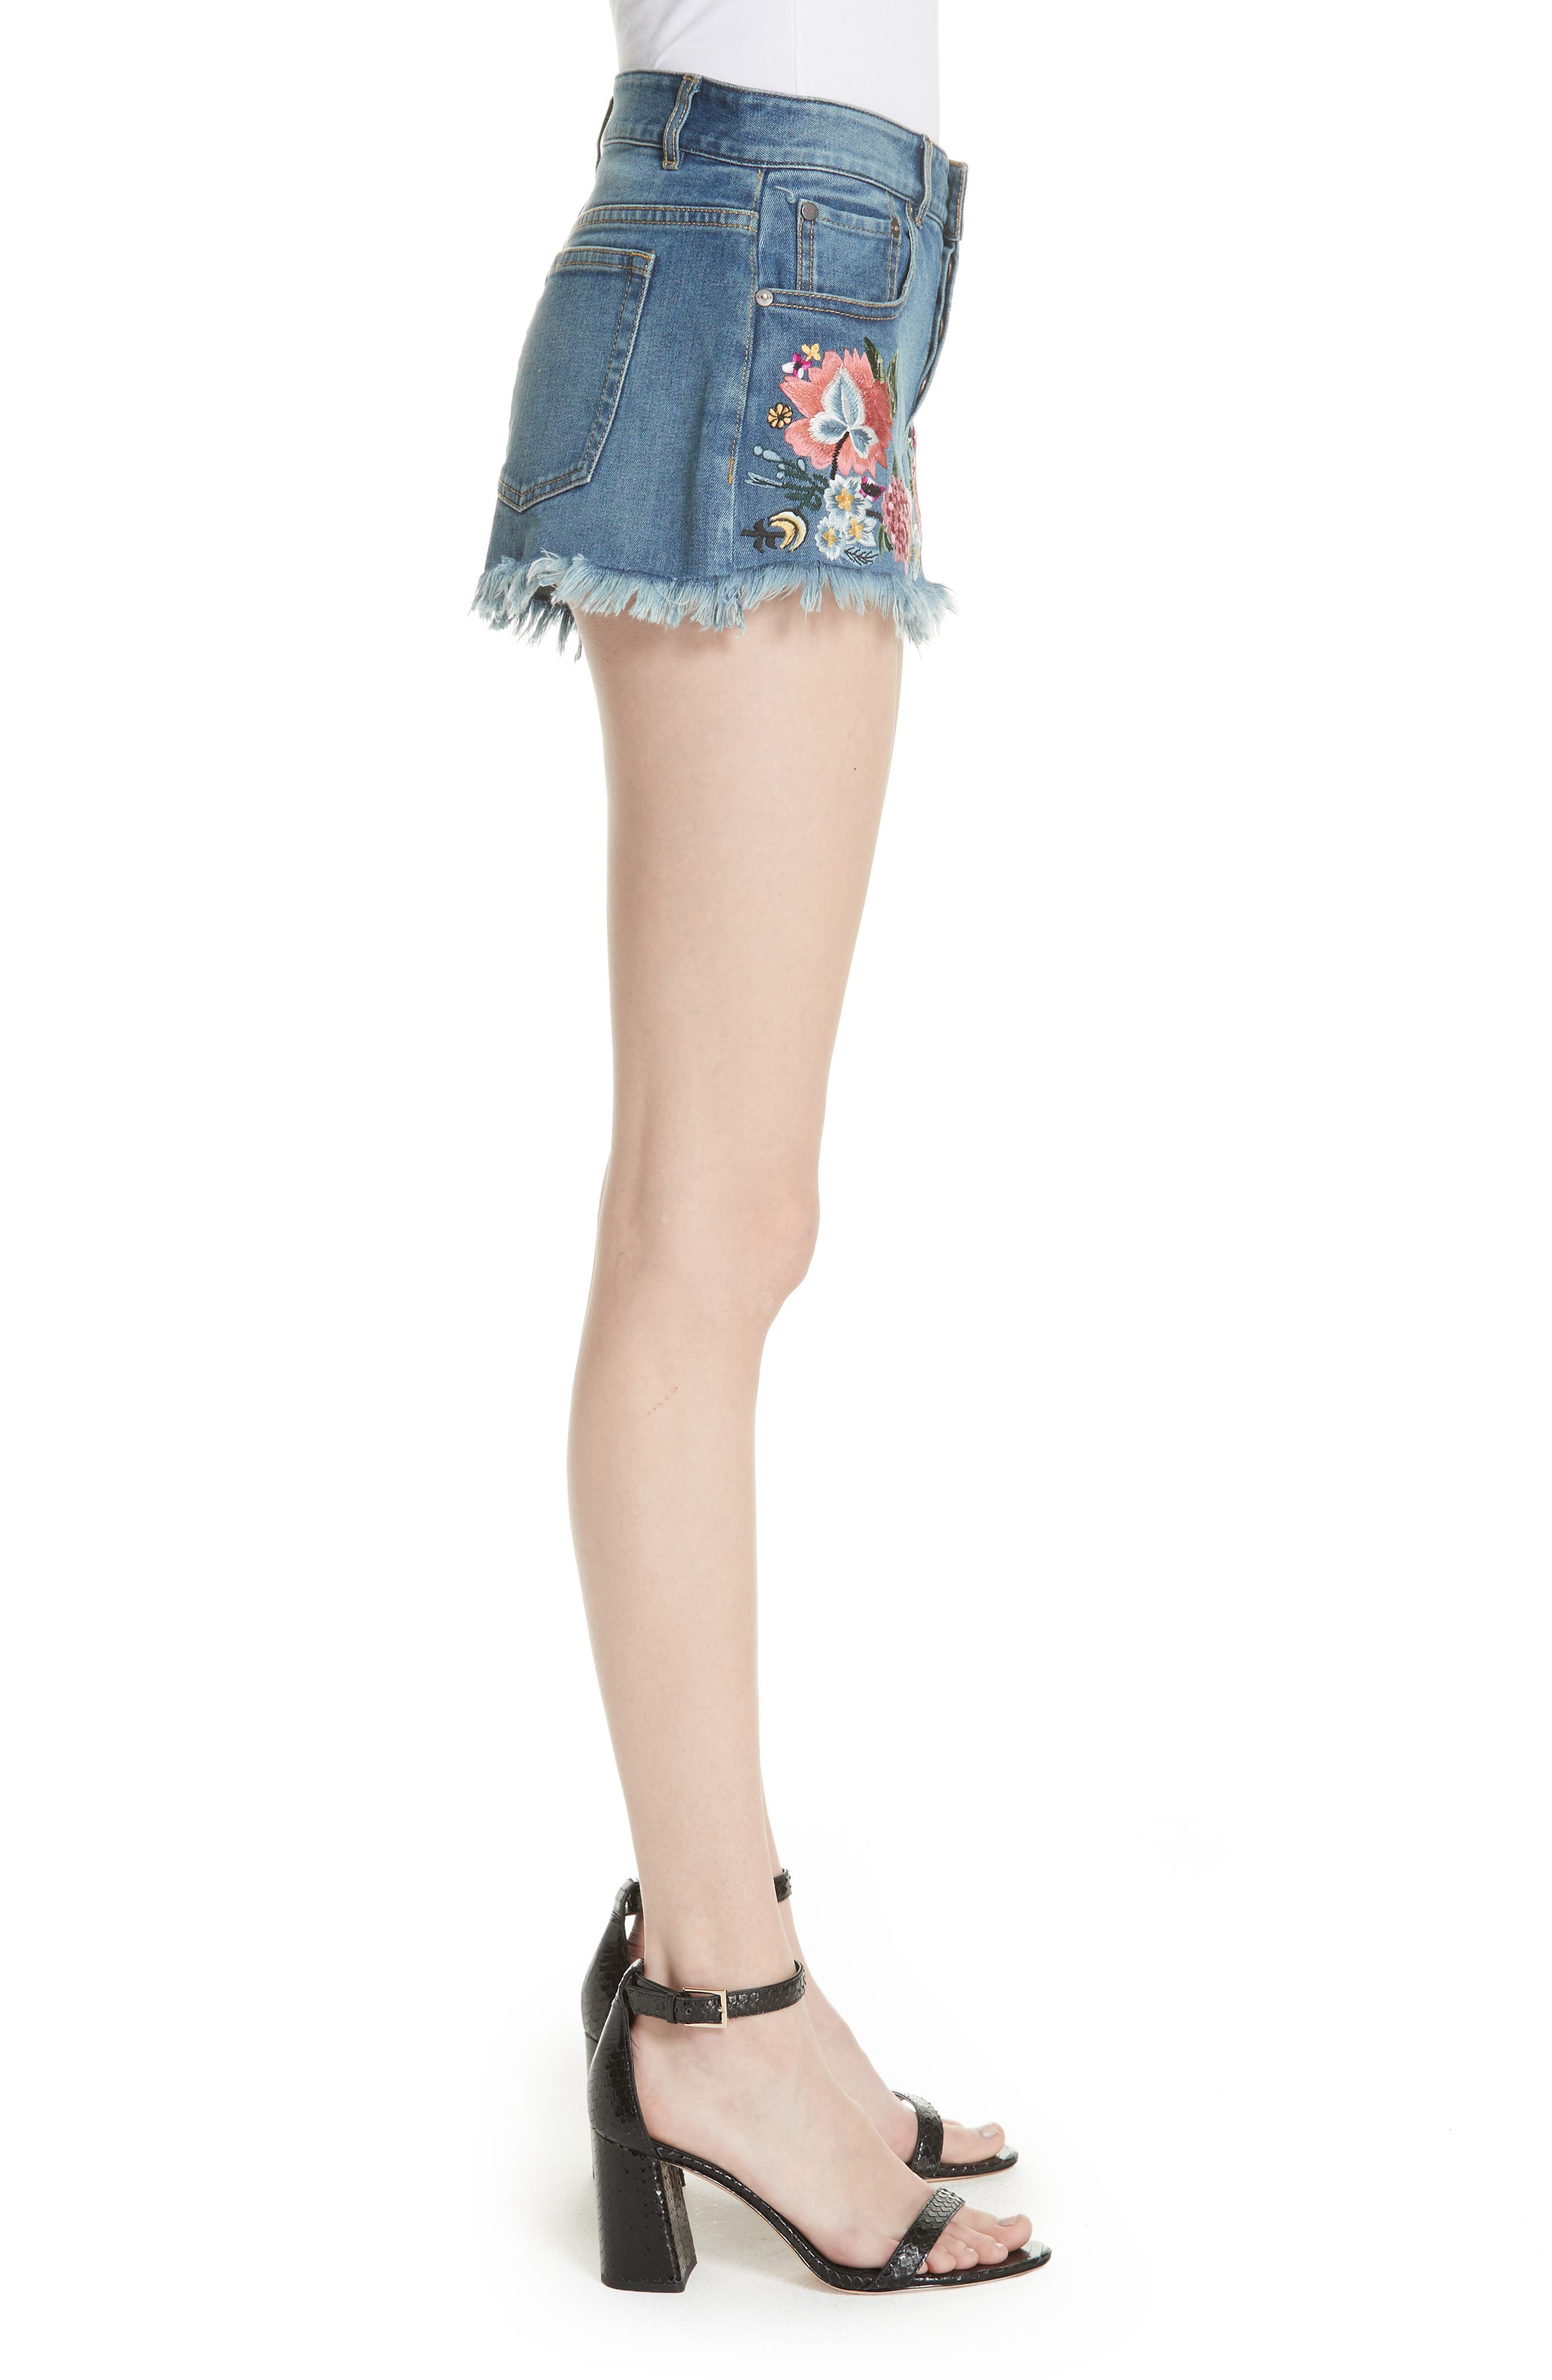 ALICE + OLIVIA JEANS,                             Embroidered Denim Shorts,                             Alternate thumbnail 3, color,                             460